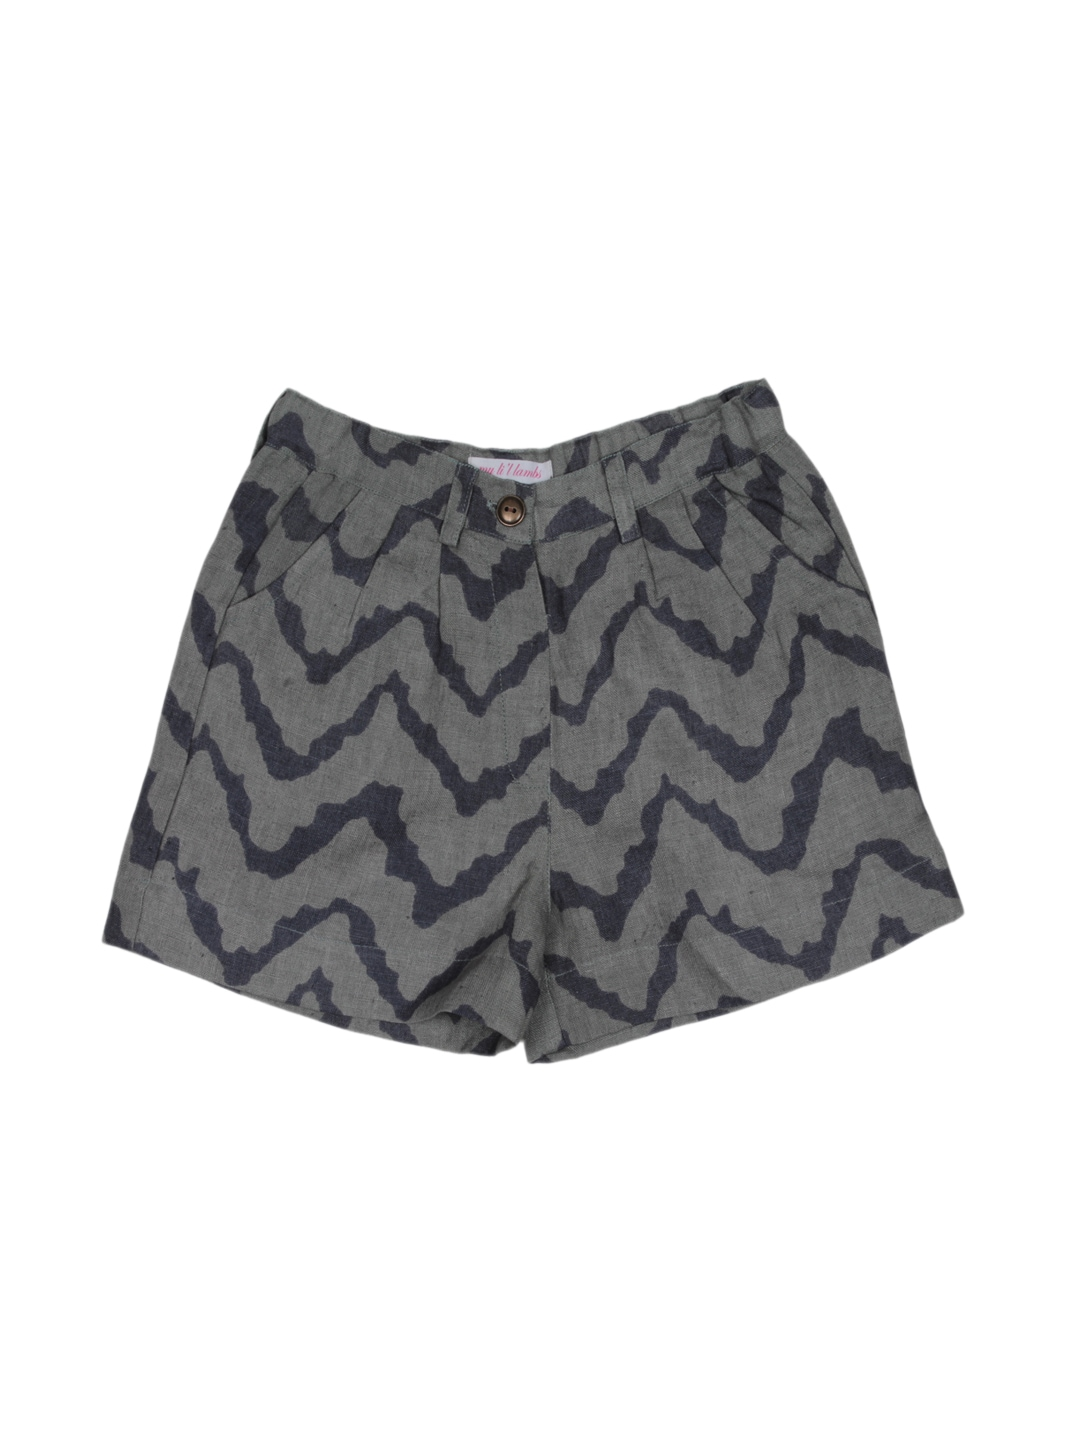 My Little Lambs Girls Grey & Black Printed Linen Shorts